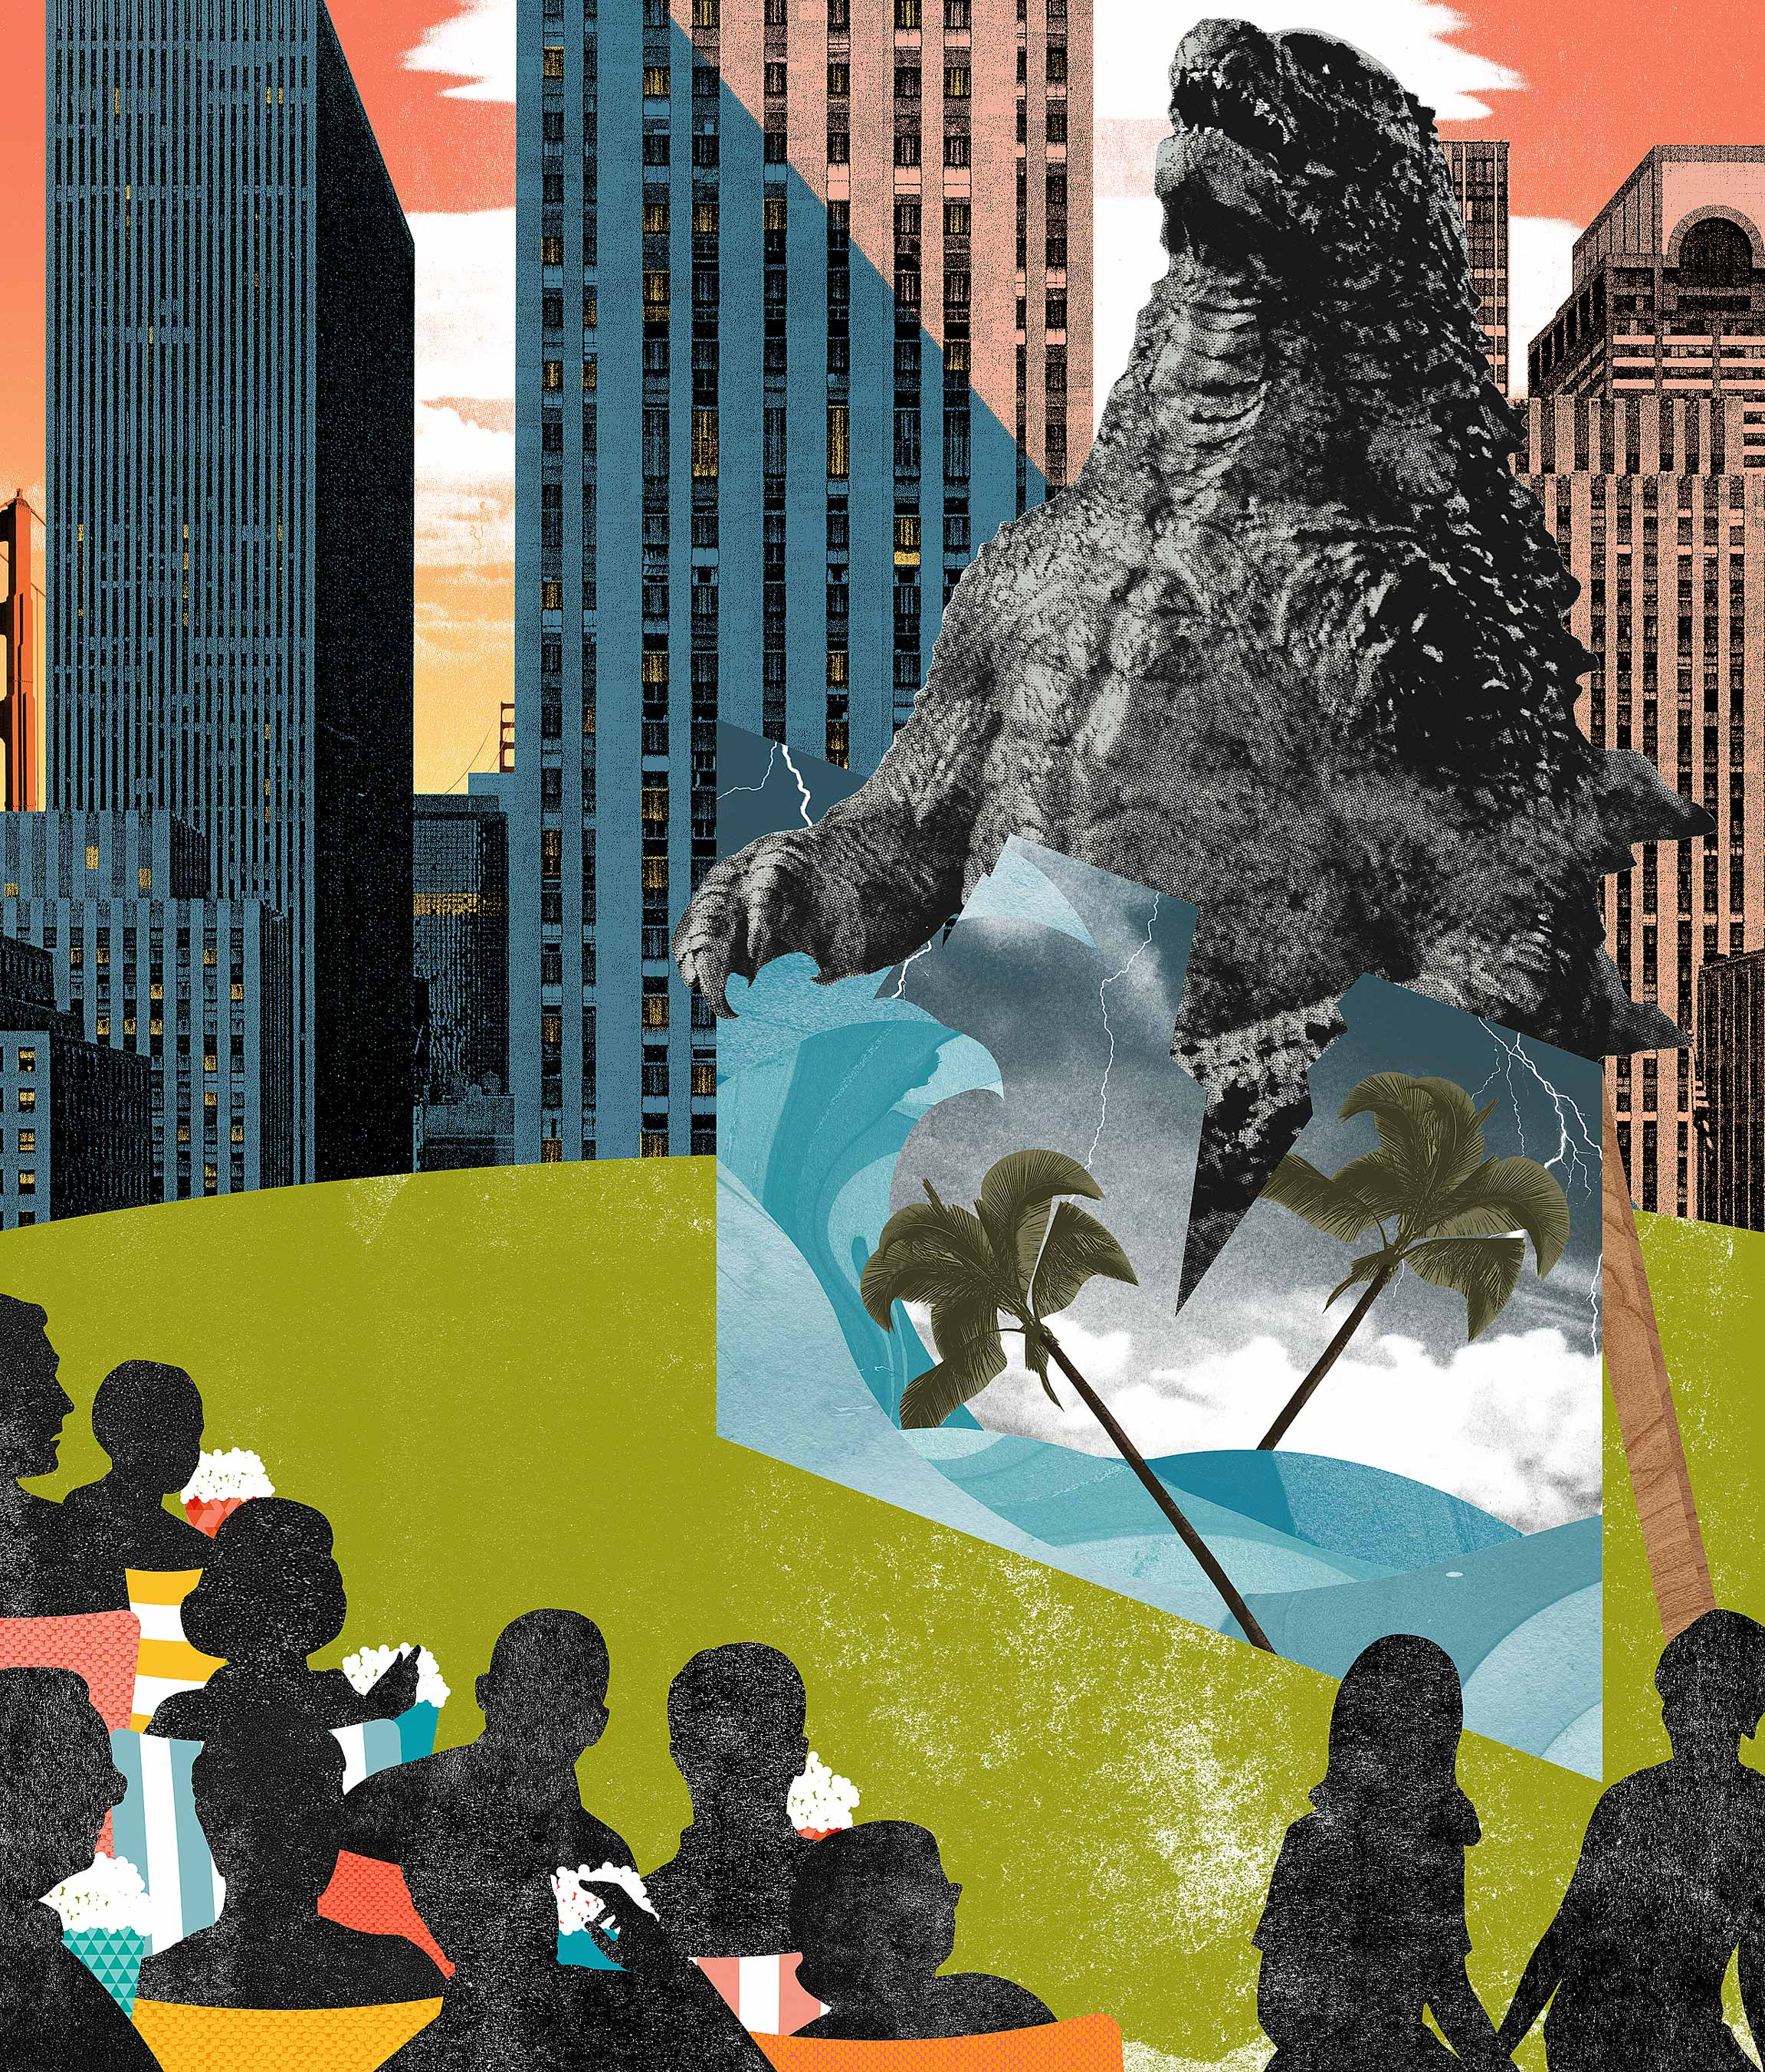 Godzilla leads a surge of summer movies that reflect our environmental anxieties